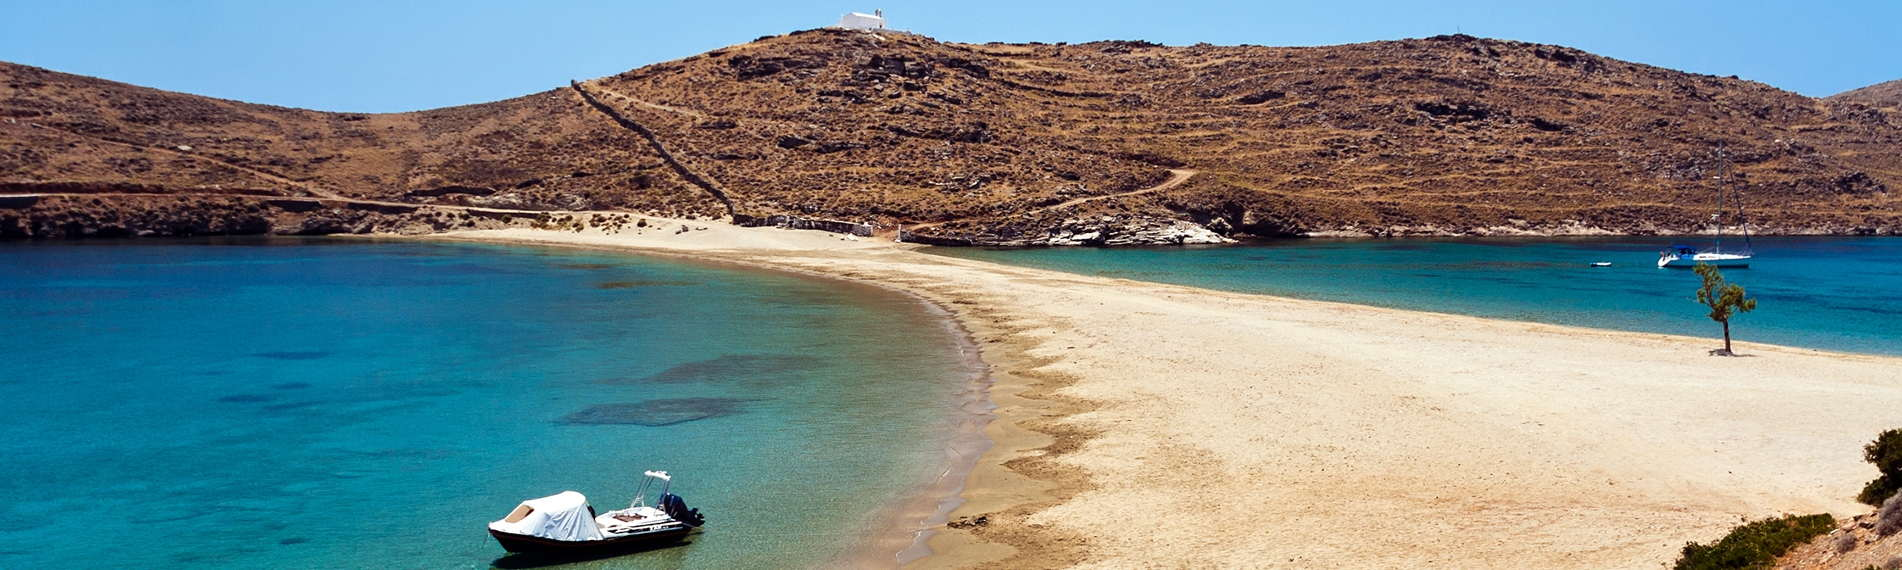 View of the beach and the beautiful sea in Kythnos, Greece